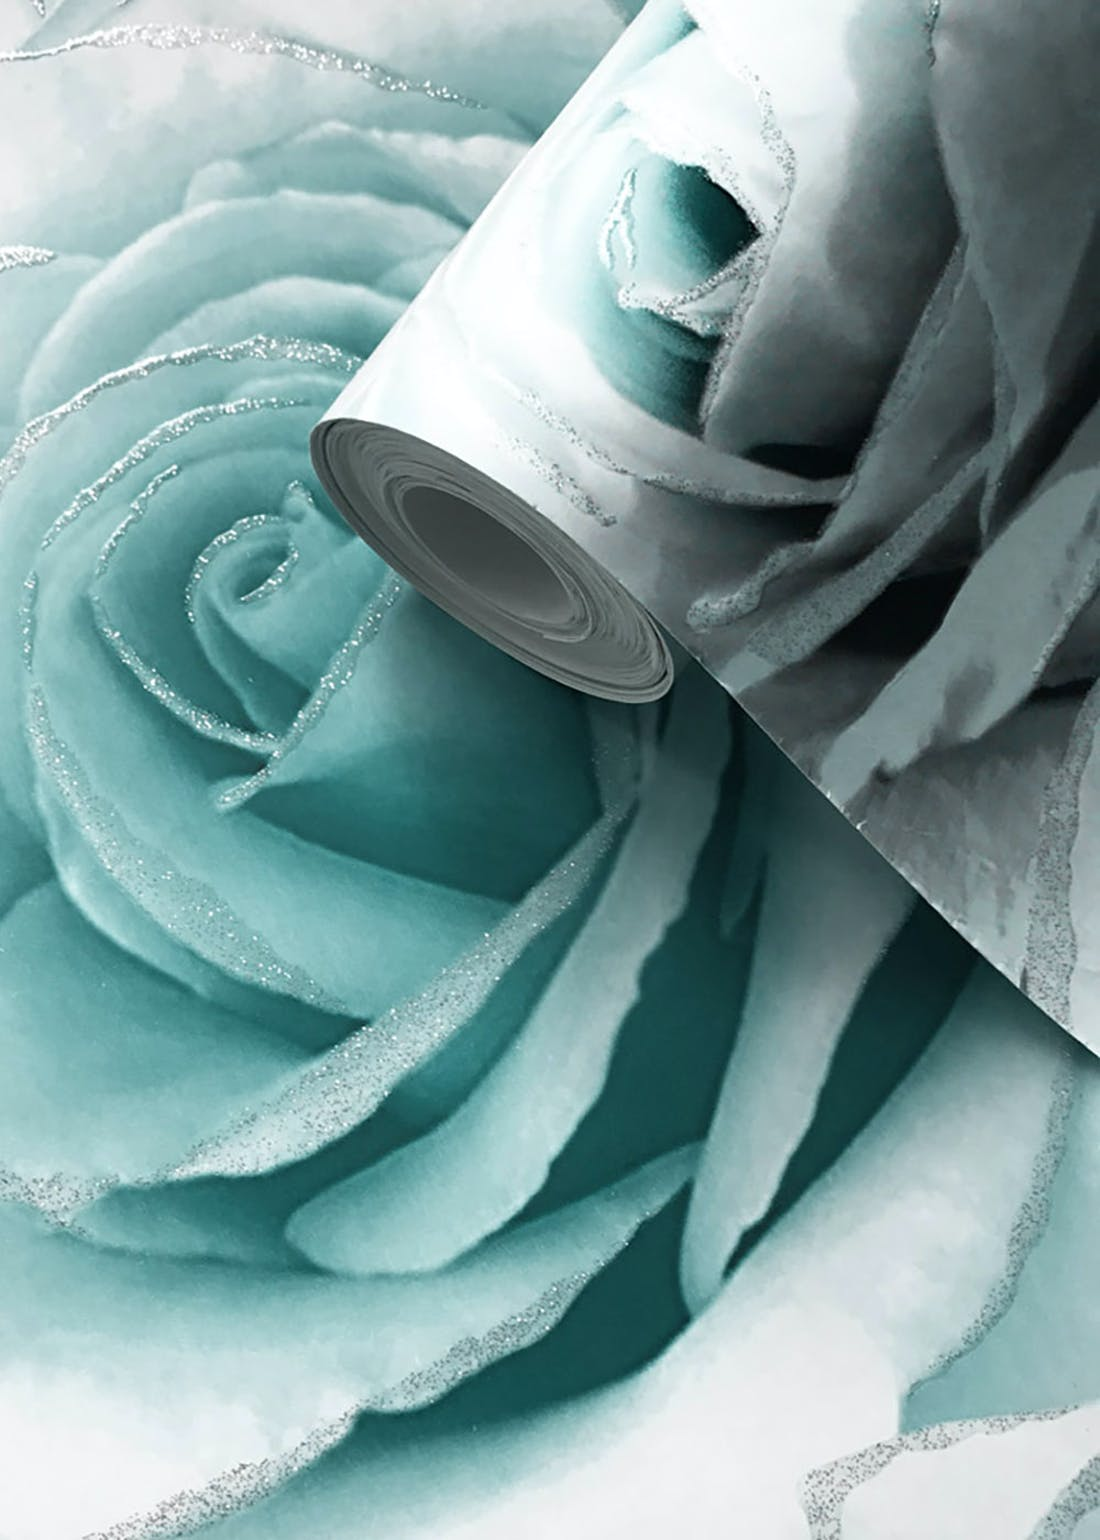 Muriva Madison Aqua Glitter Rose Wallpaper (10.05m x 53cm)